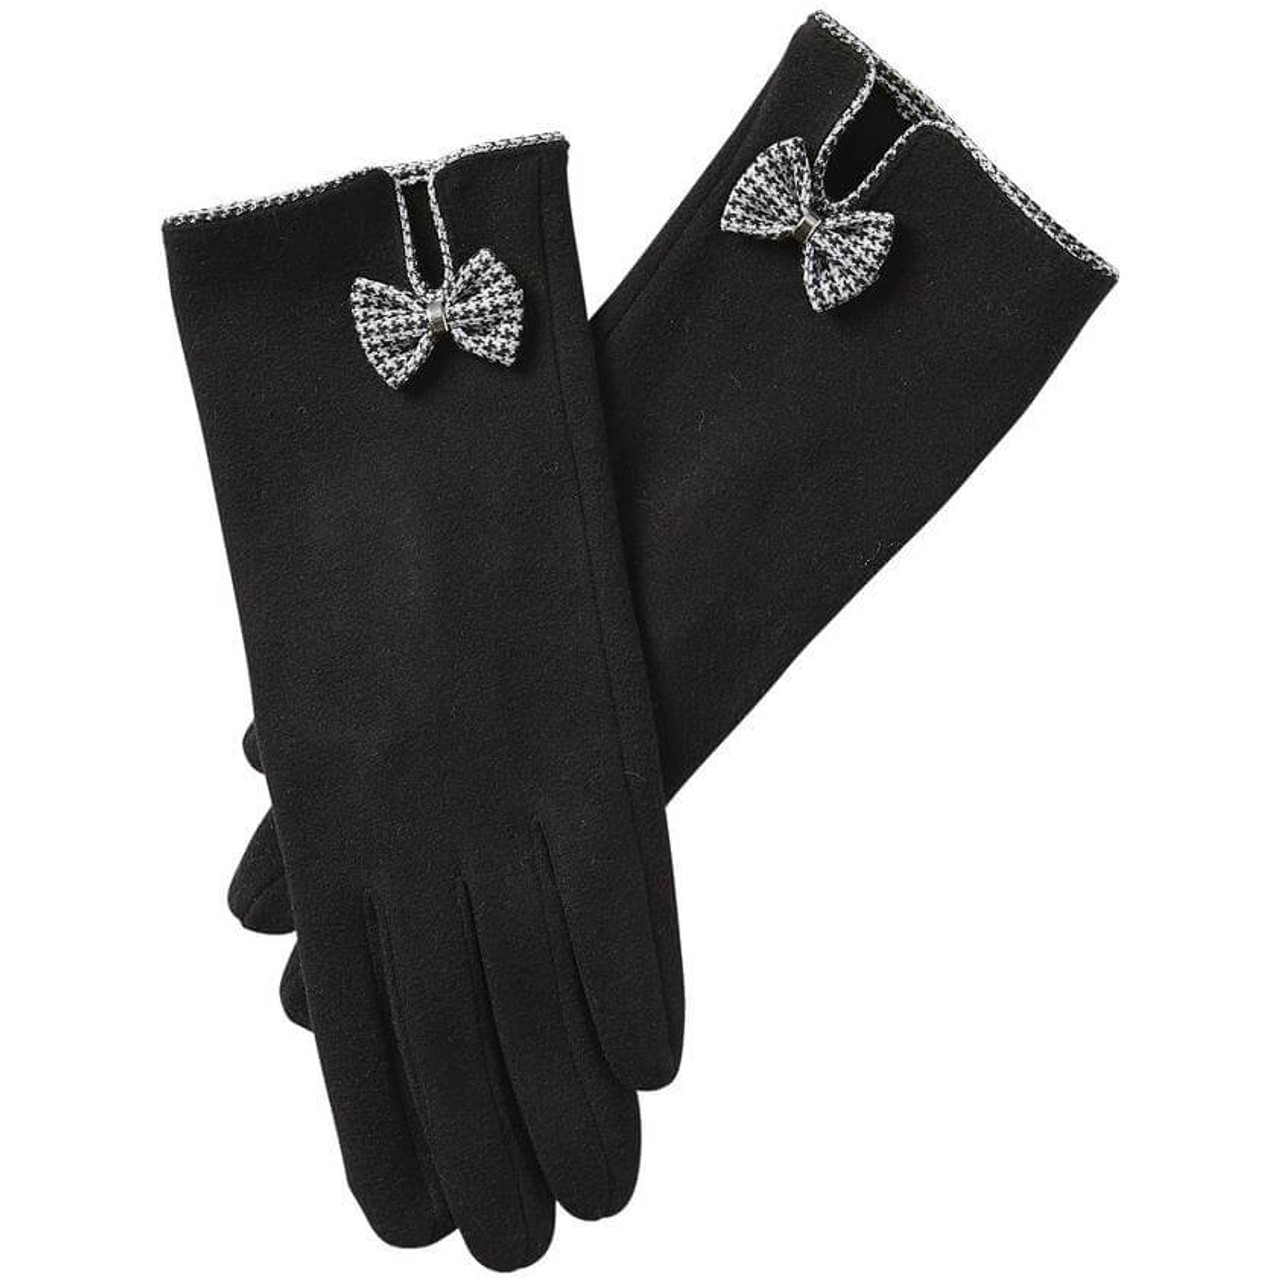 Isla bow gloves in black Dress up with the Isla Bow Glove. The tiny bow is the perfect addition while still looking chic and sophisticated.